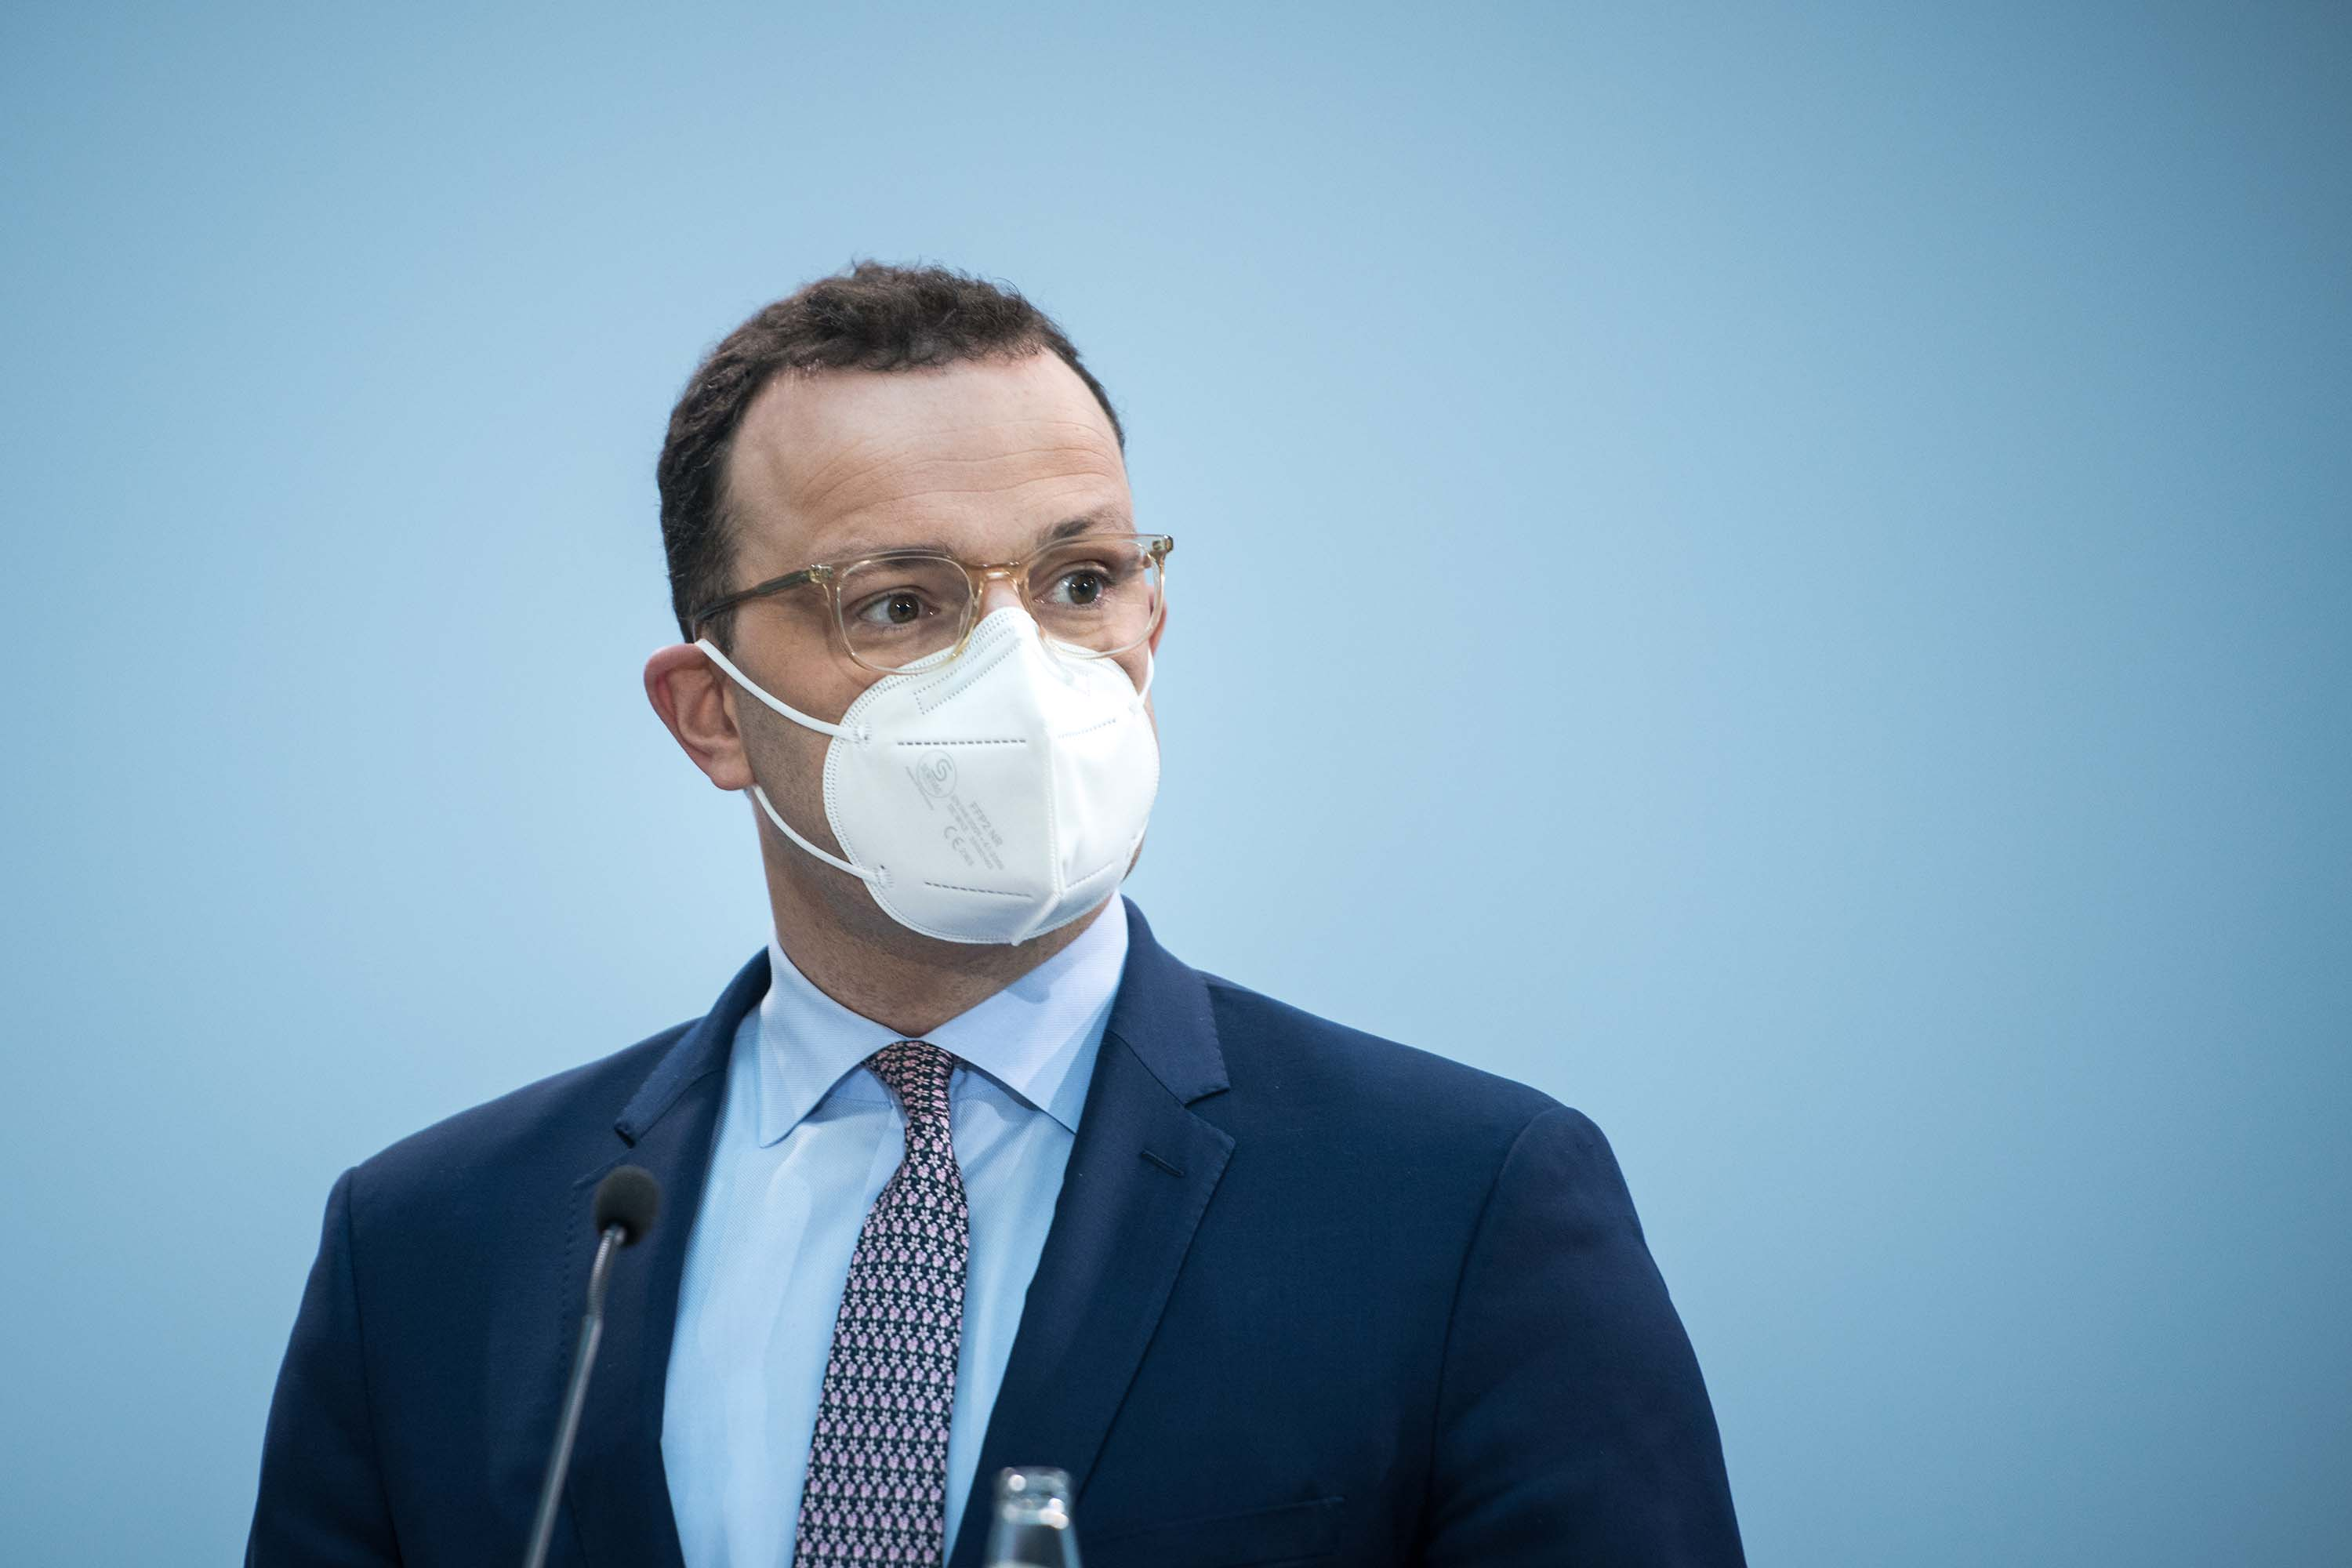 German Health Minister Jens Spahn arrives for a news conference on Friday, December 18, in Berlin, Germany.